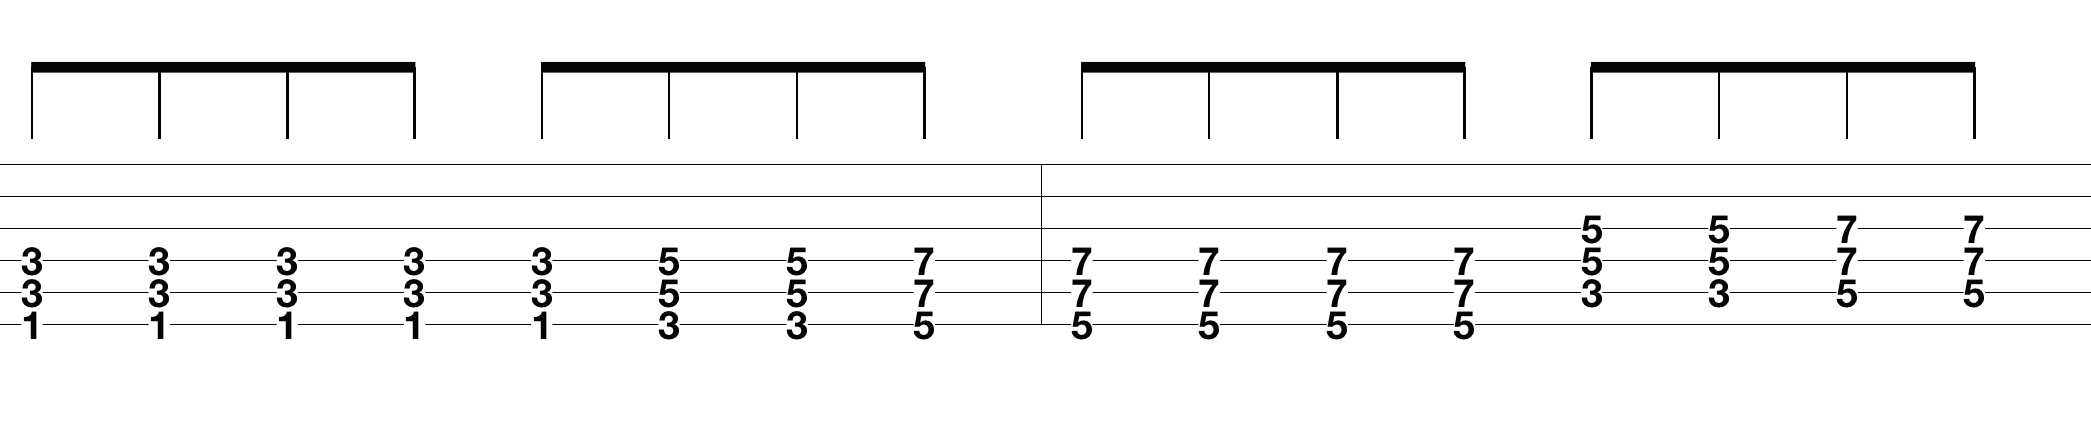 learn-rock-guitar_3.png